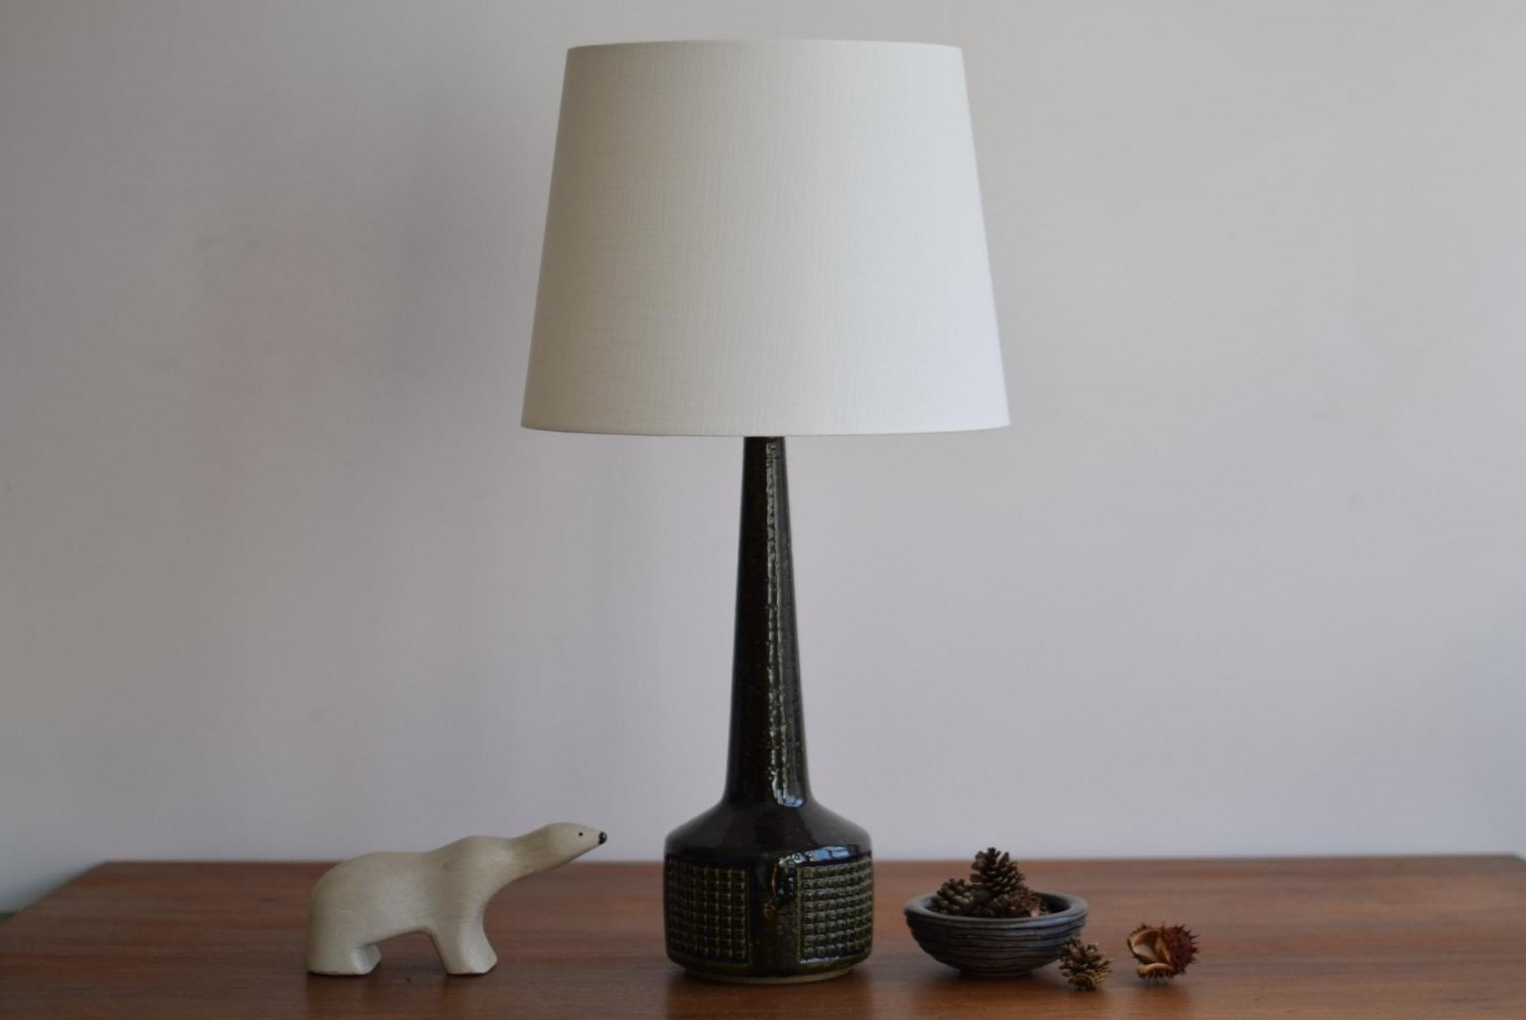 Western Table Lamps For Living Room Throughout Well Known Western Floor Lamps : Probably Fantastic Free Floor Table Lamp (View 14 of 15)